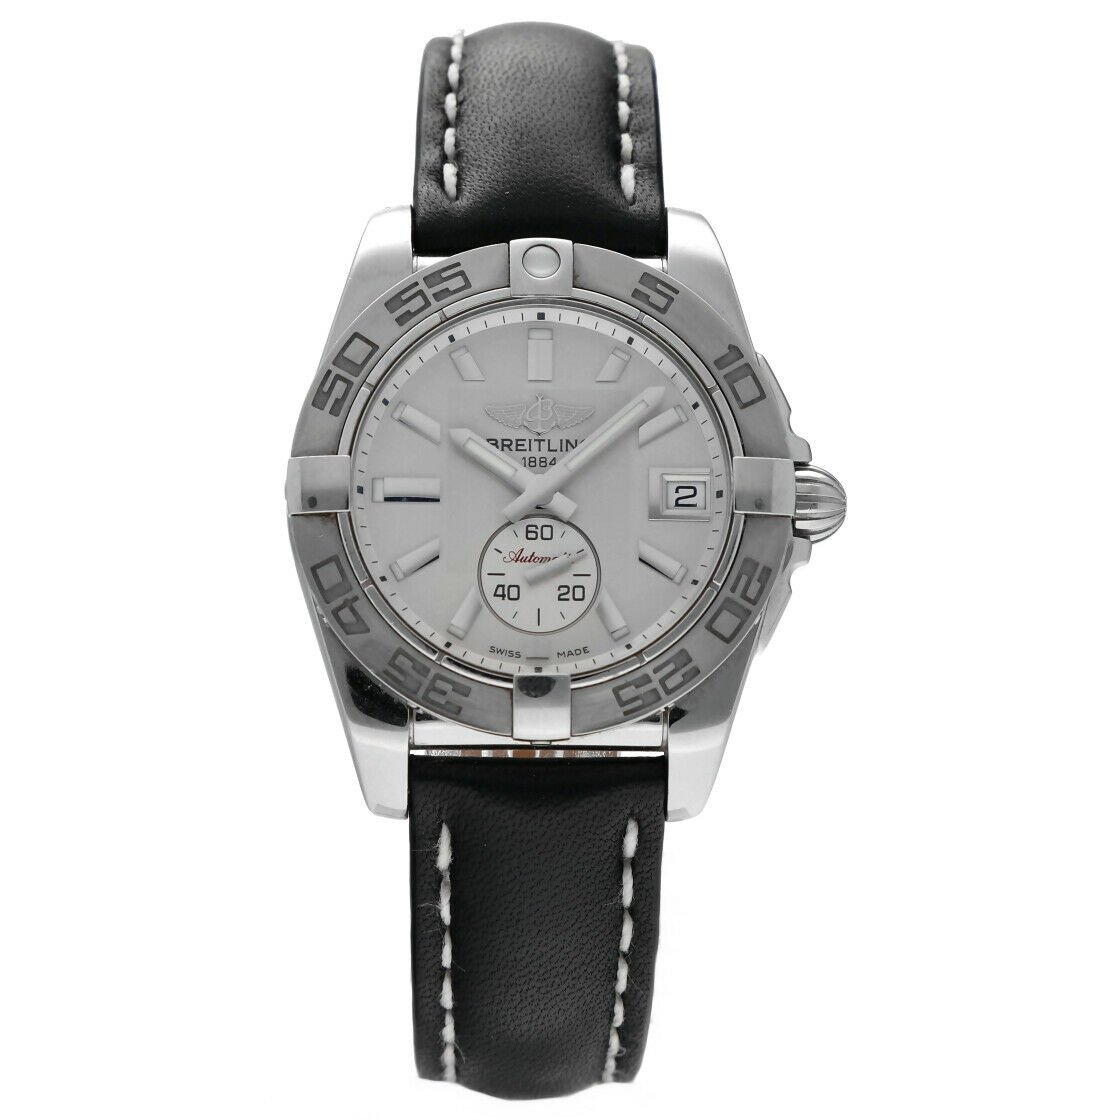 Breitling A37330 Galactic 36 Steel Silver Dial Leather Automatic Mens Watch 124367709895